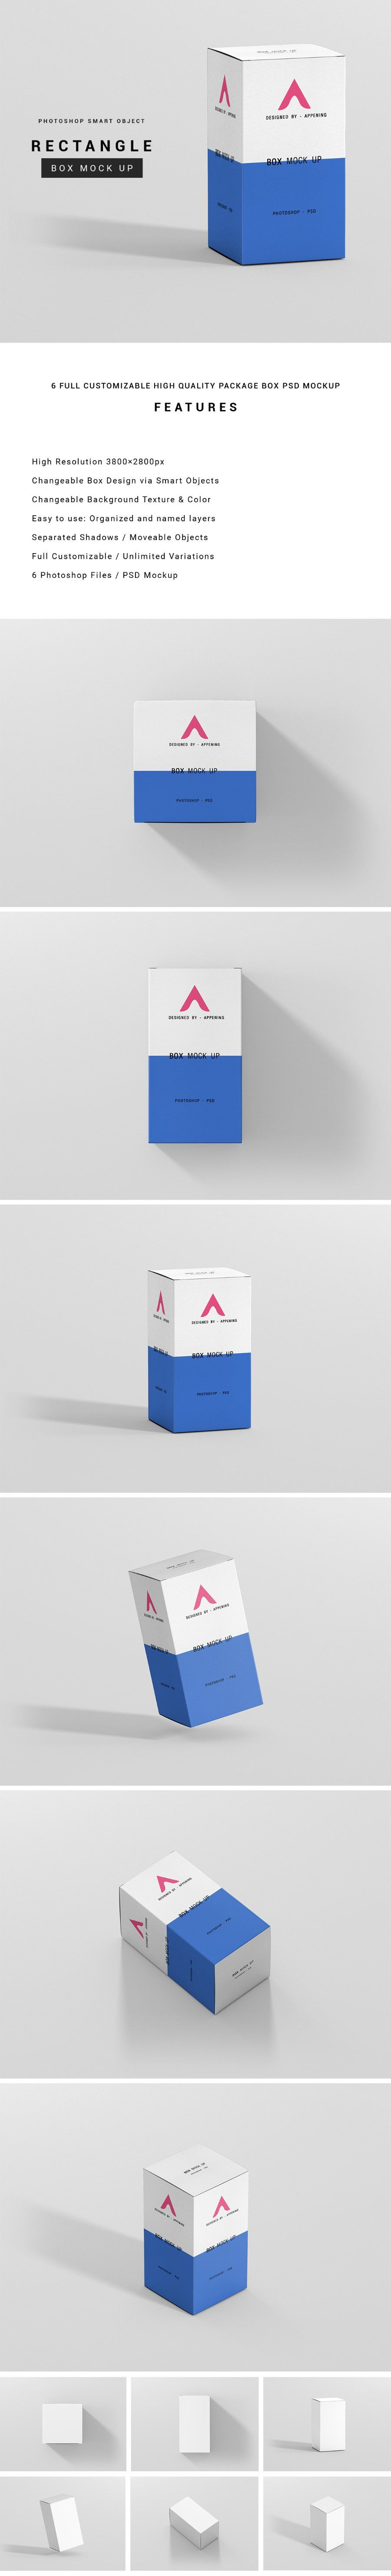 Download Grab This Mouth Watering Huge Set Of Clean Rectangle Packaging Boxes Free Into Your Repertoire Psd Mockup To Gi Box Mockup Free Packaging Mockup Box Packaging